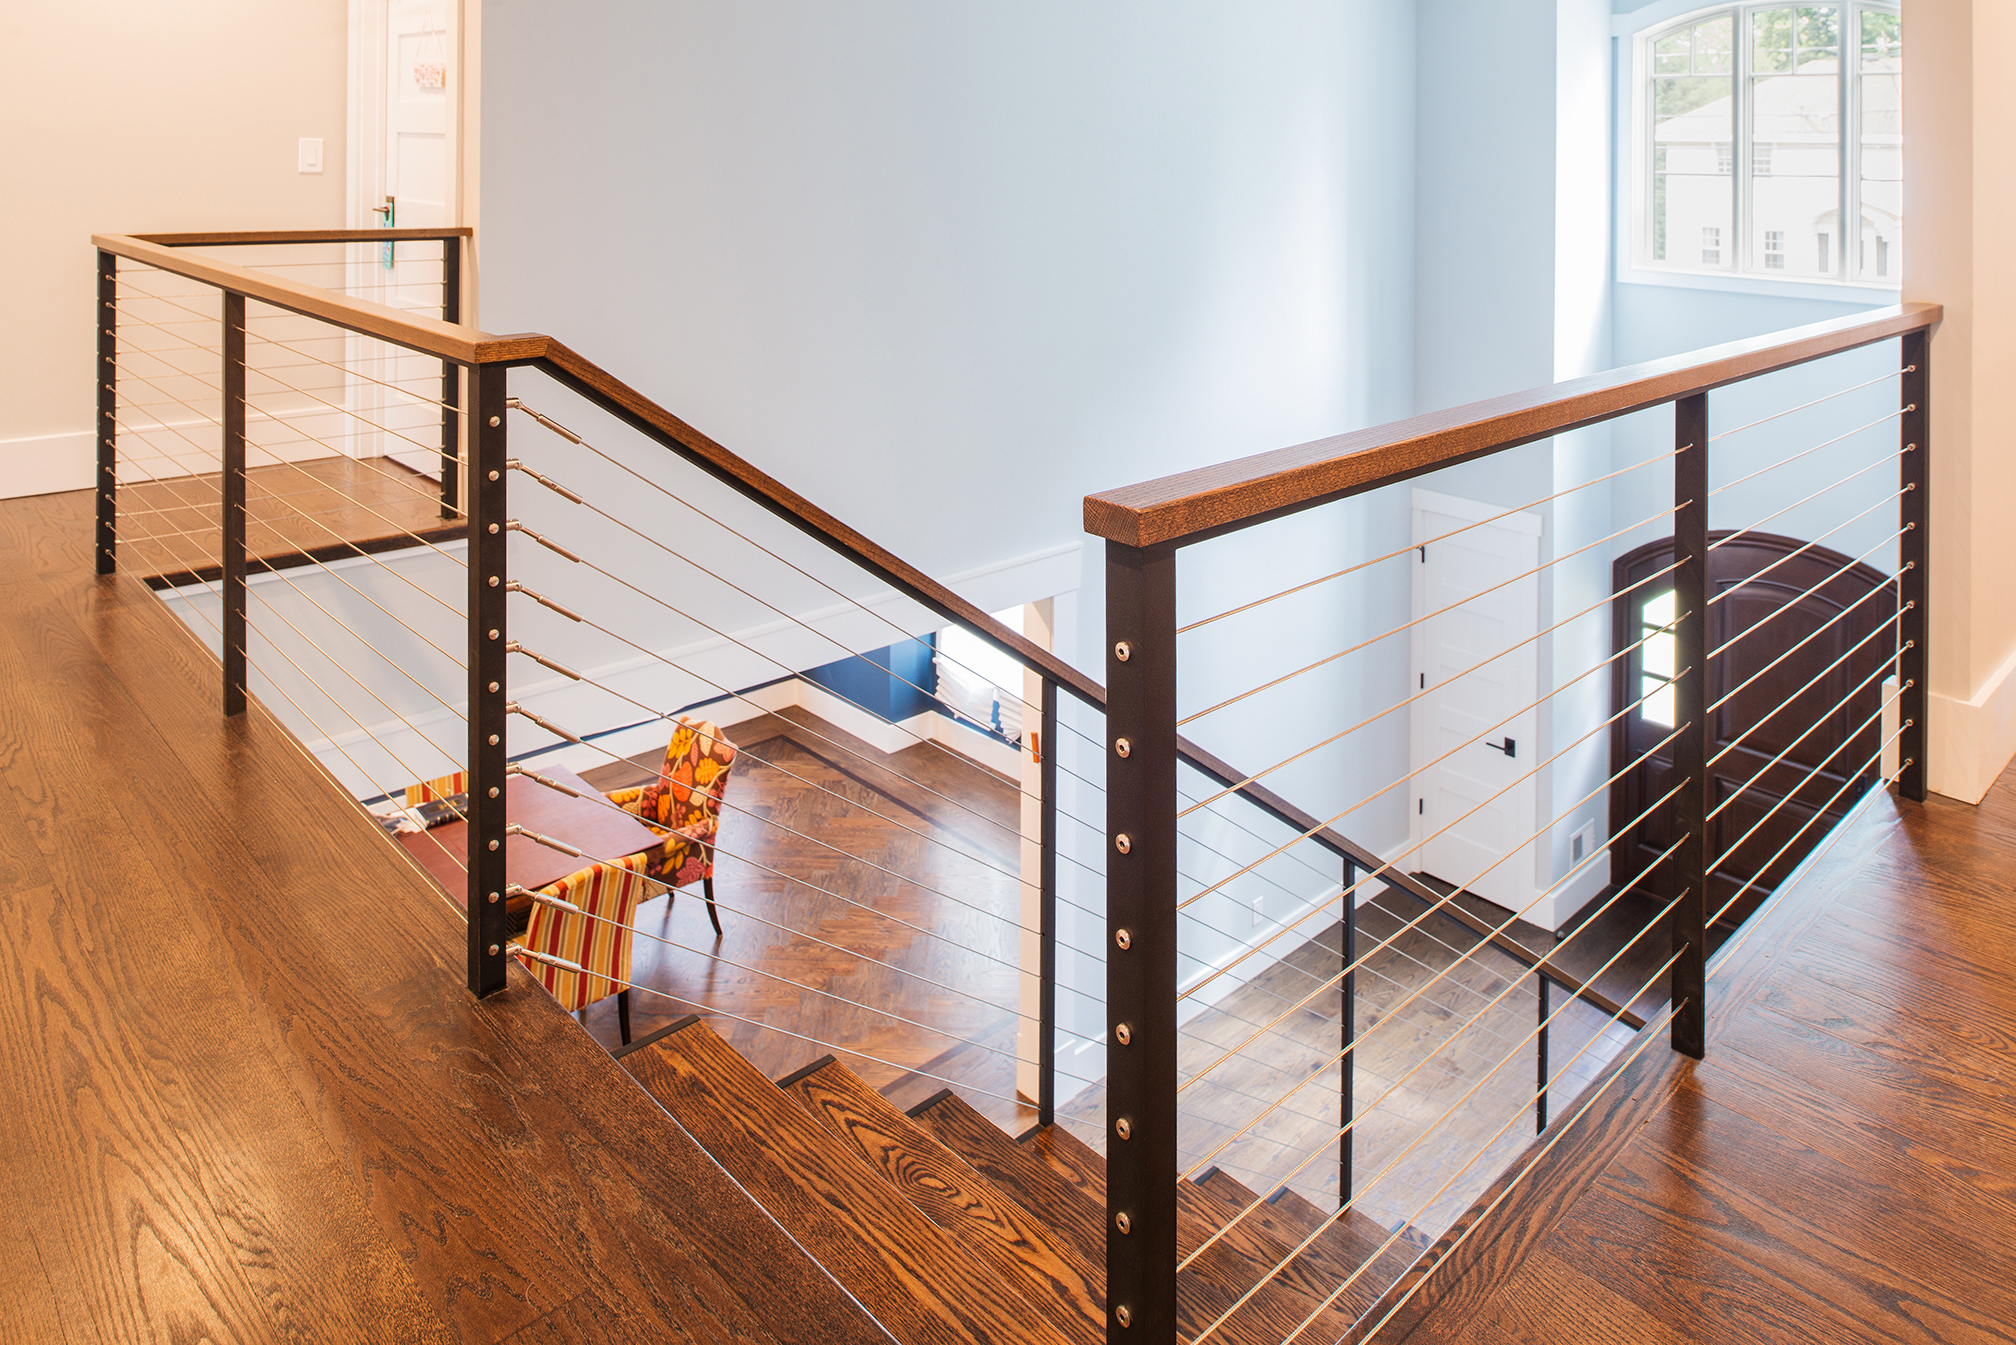 Second level foyer entry with cable railings and staircase.